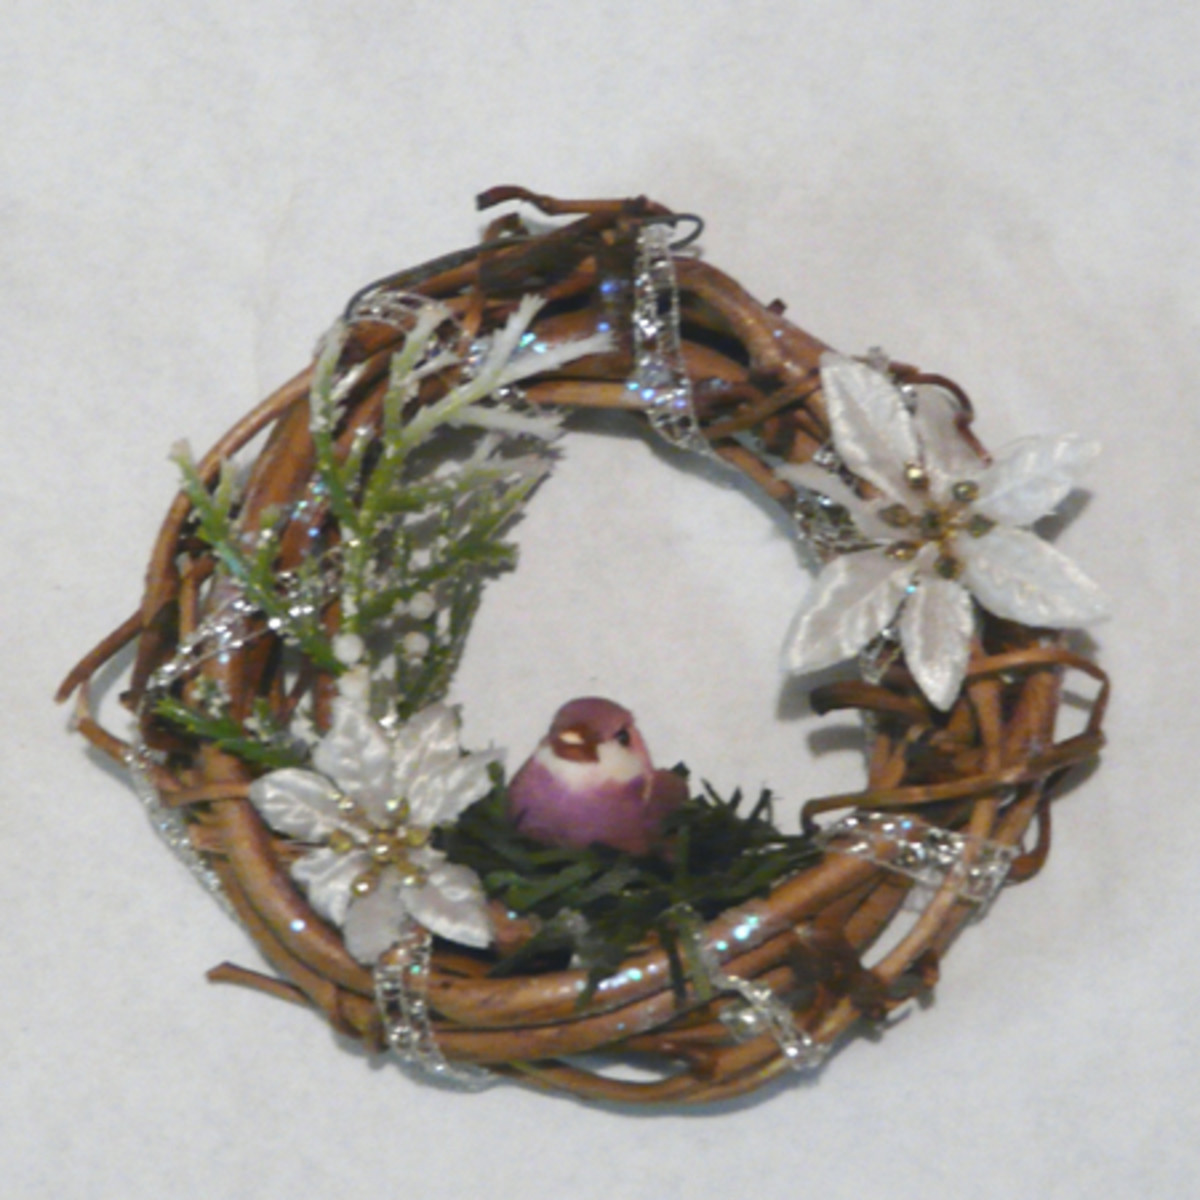 Mini Wreath Ornament with bird